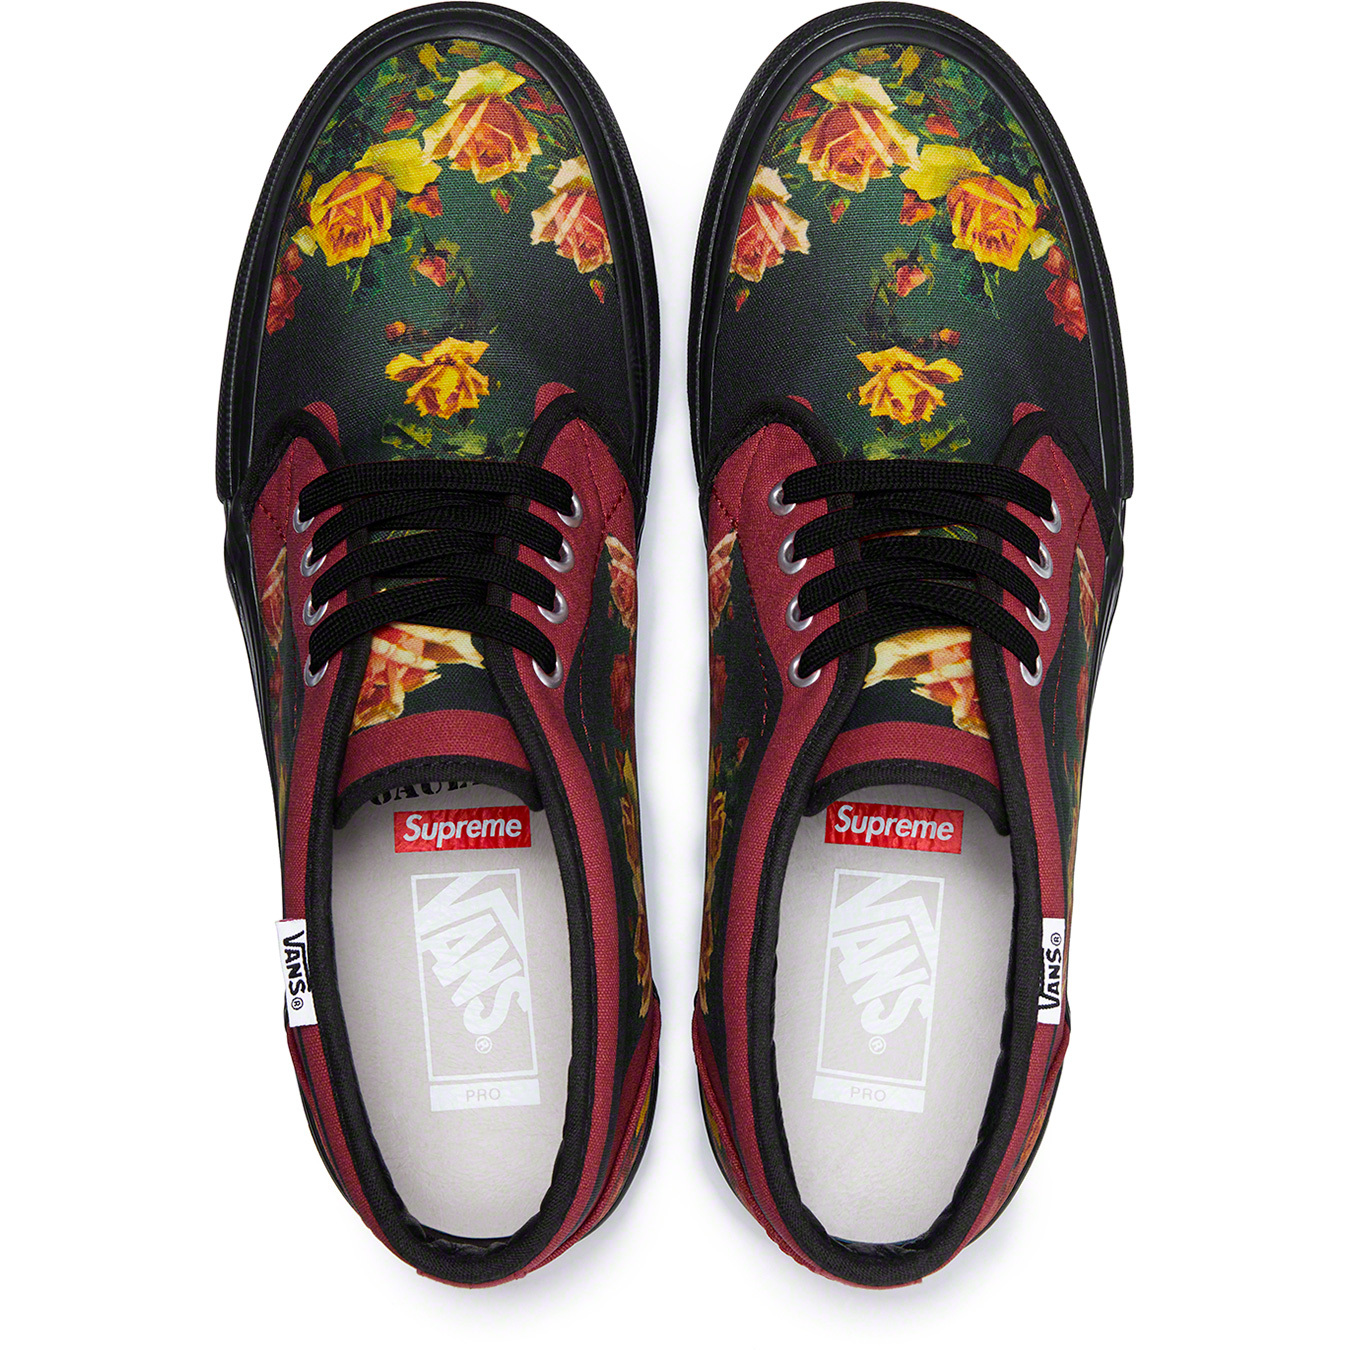 supreme-jean-paul-gaultier-19ss-collaboration-release-20190413-week7-vans